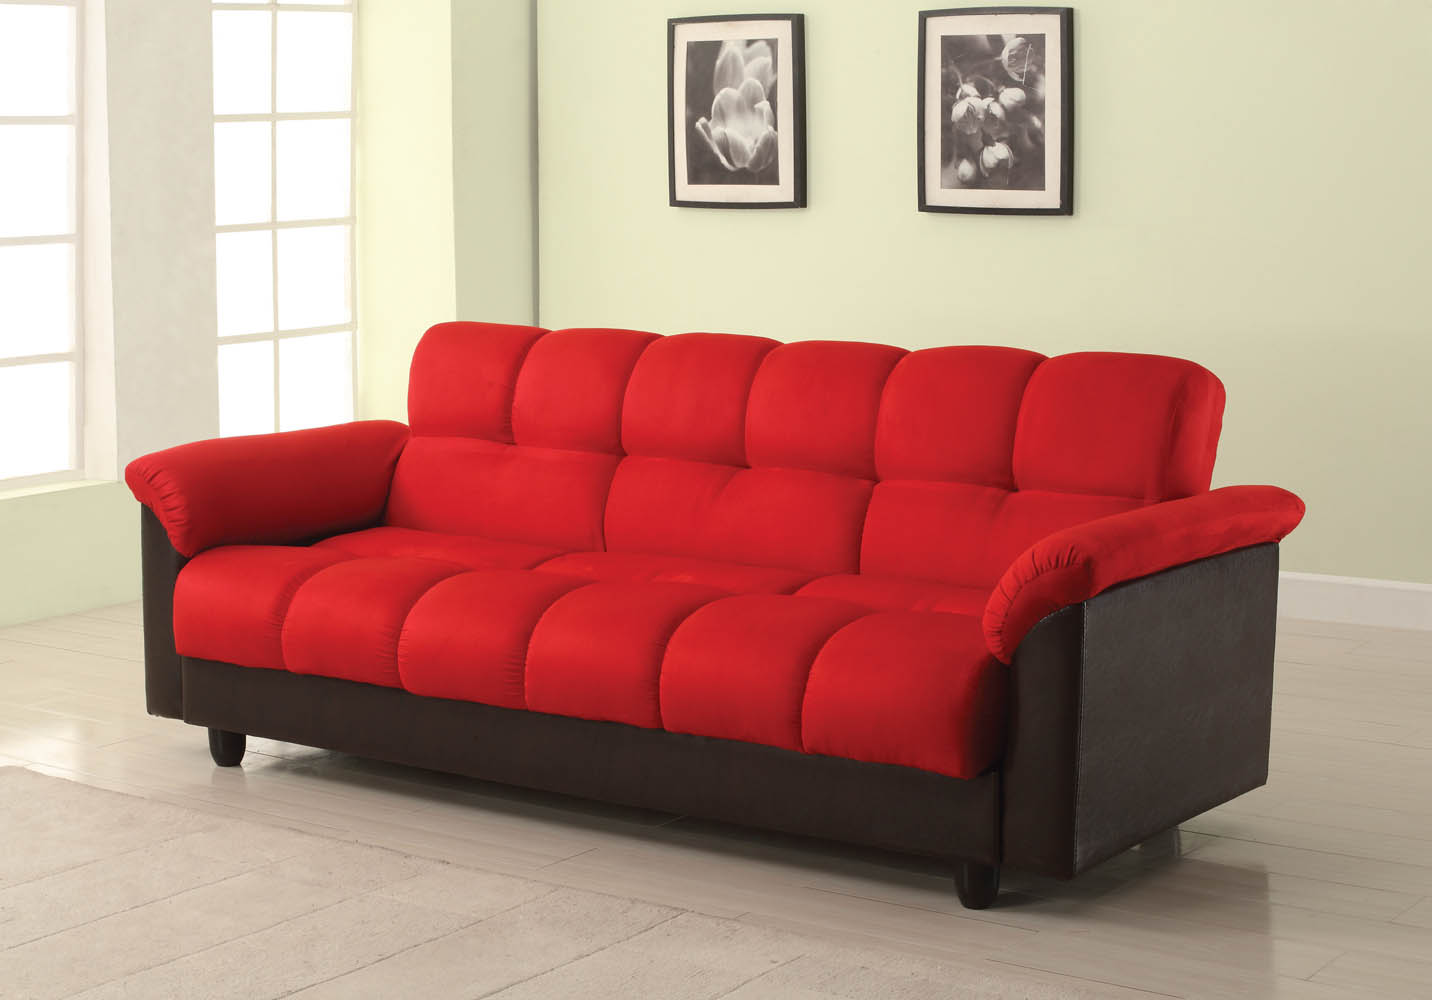 Red and Black Adjustable Sofa Bed